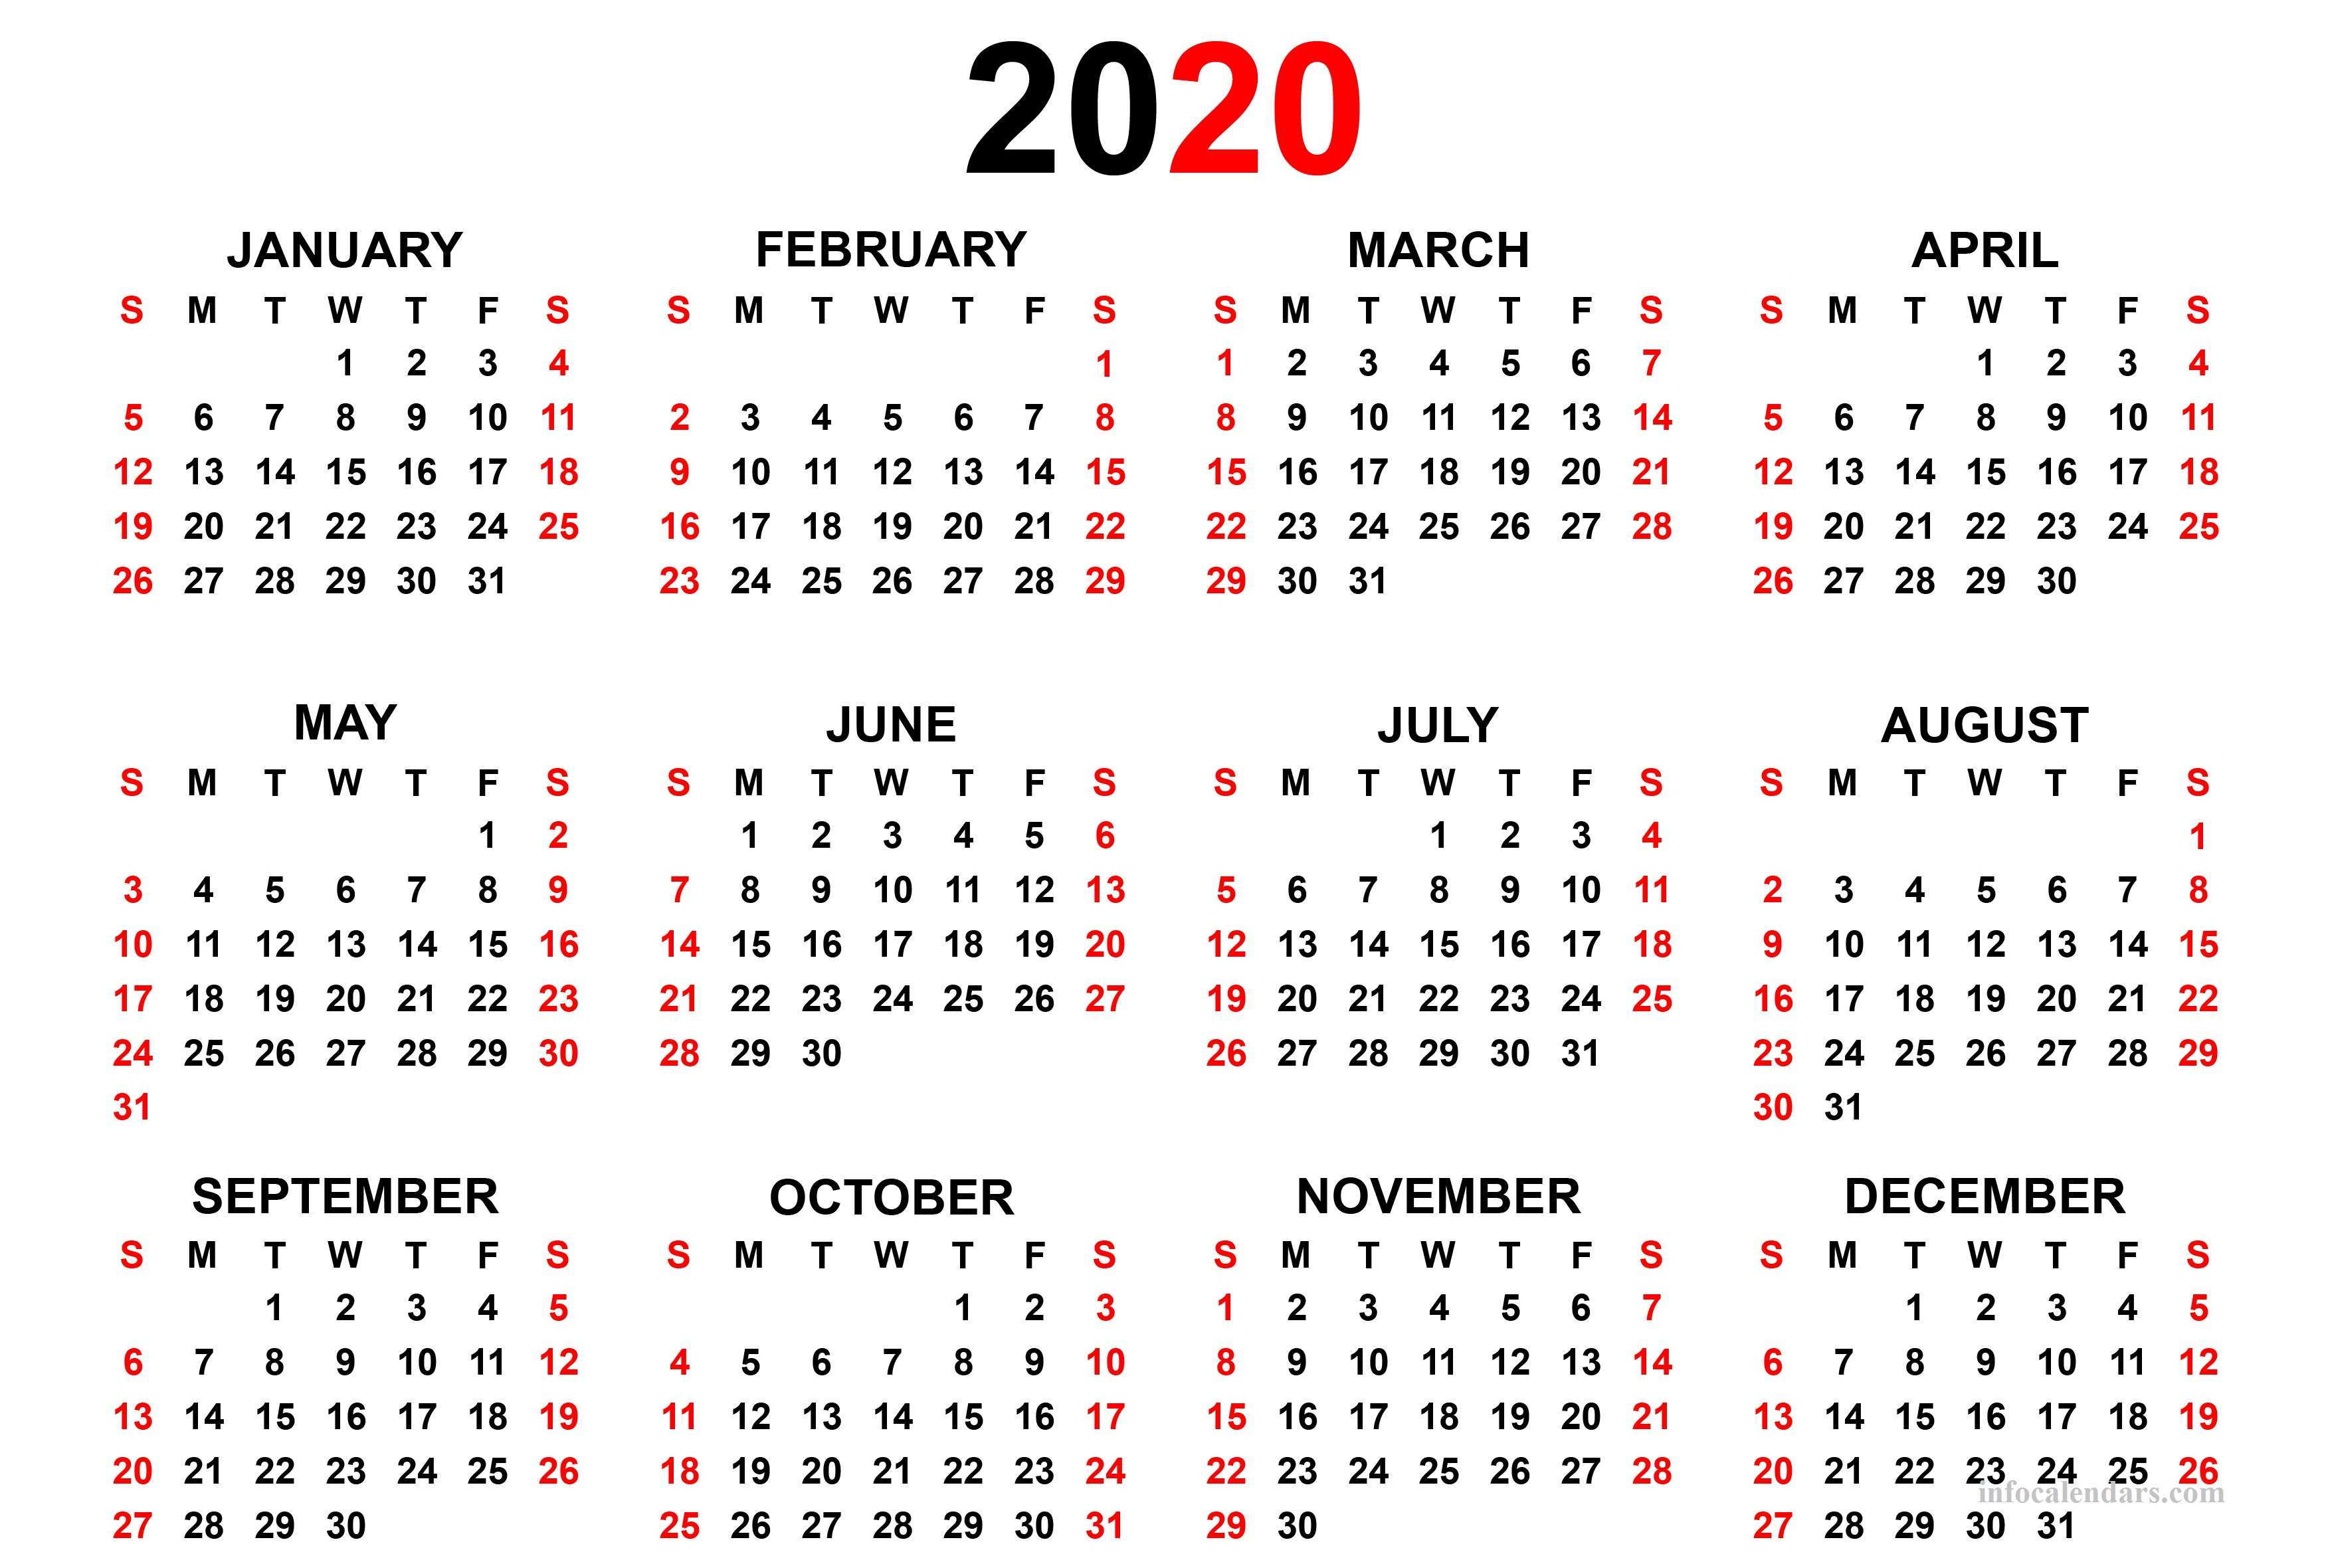 Printable 2020 Calendar For Your Yearly Trip  Infocalendars inside Printable Calendar 2020 With Time Slots